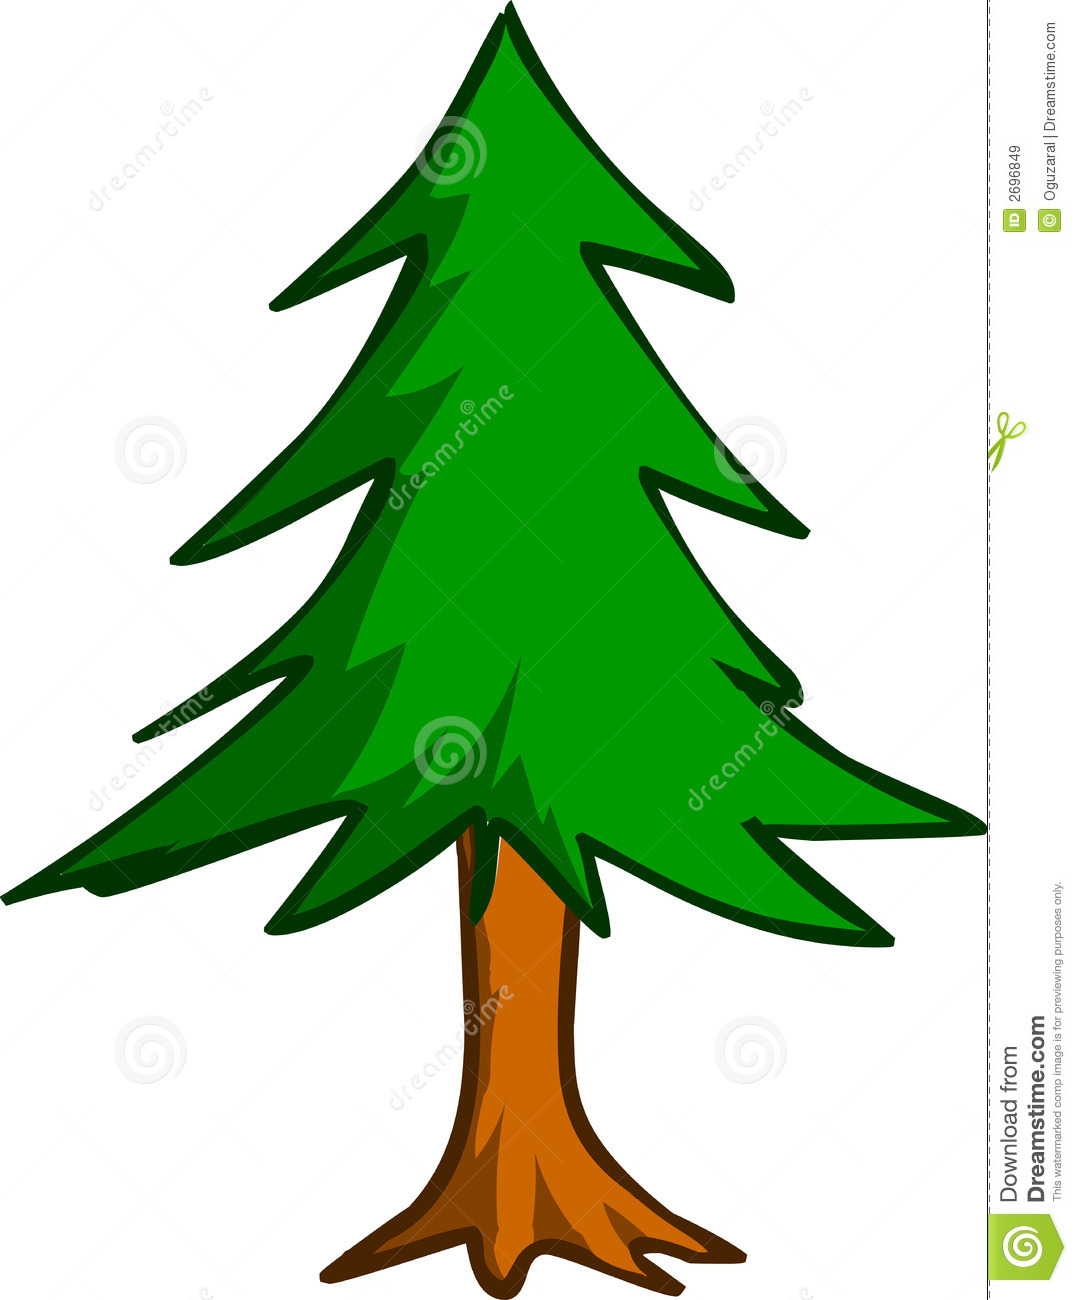 Pine Trees Drawing at GetDrawings.com | Free for personal use Pine ...